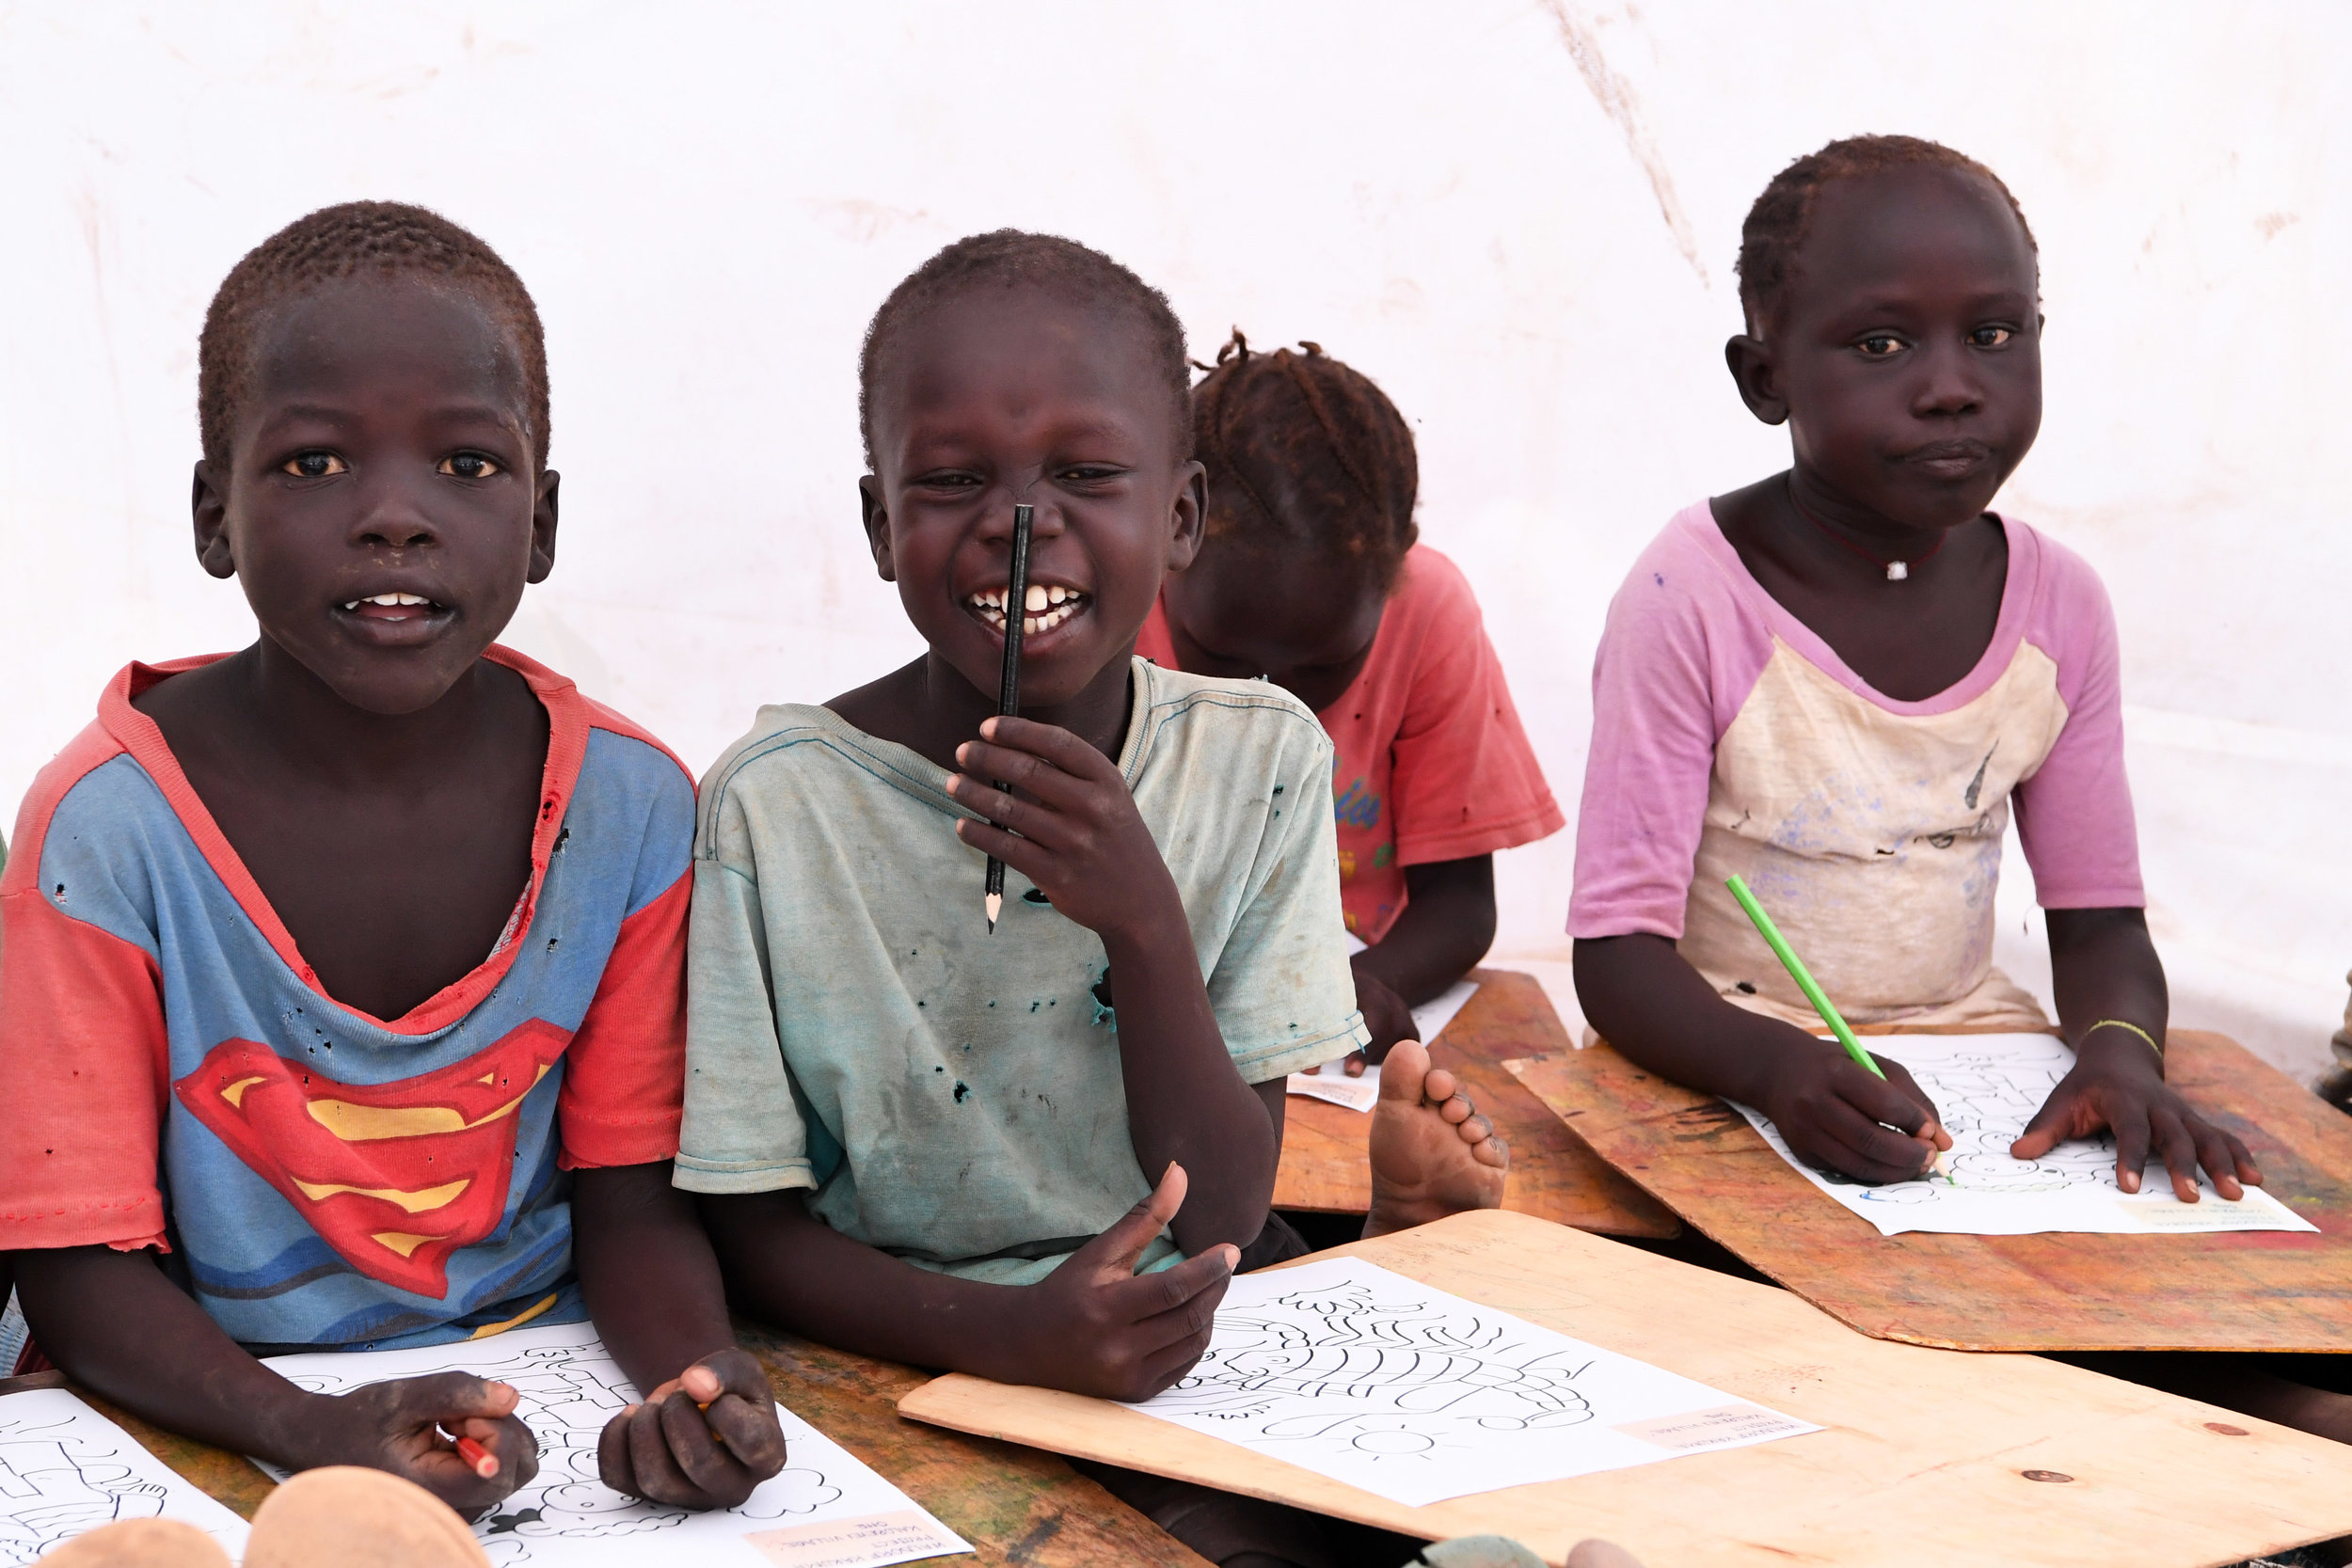 Refugee children in Kakuma Refugee Camp learning at the Furaha Early Childhood Development Centre.